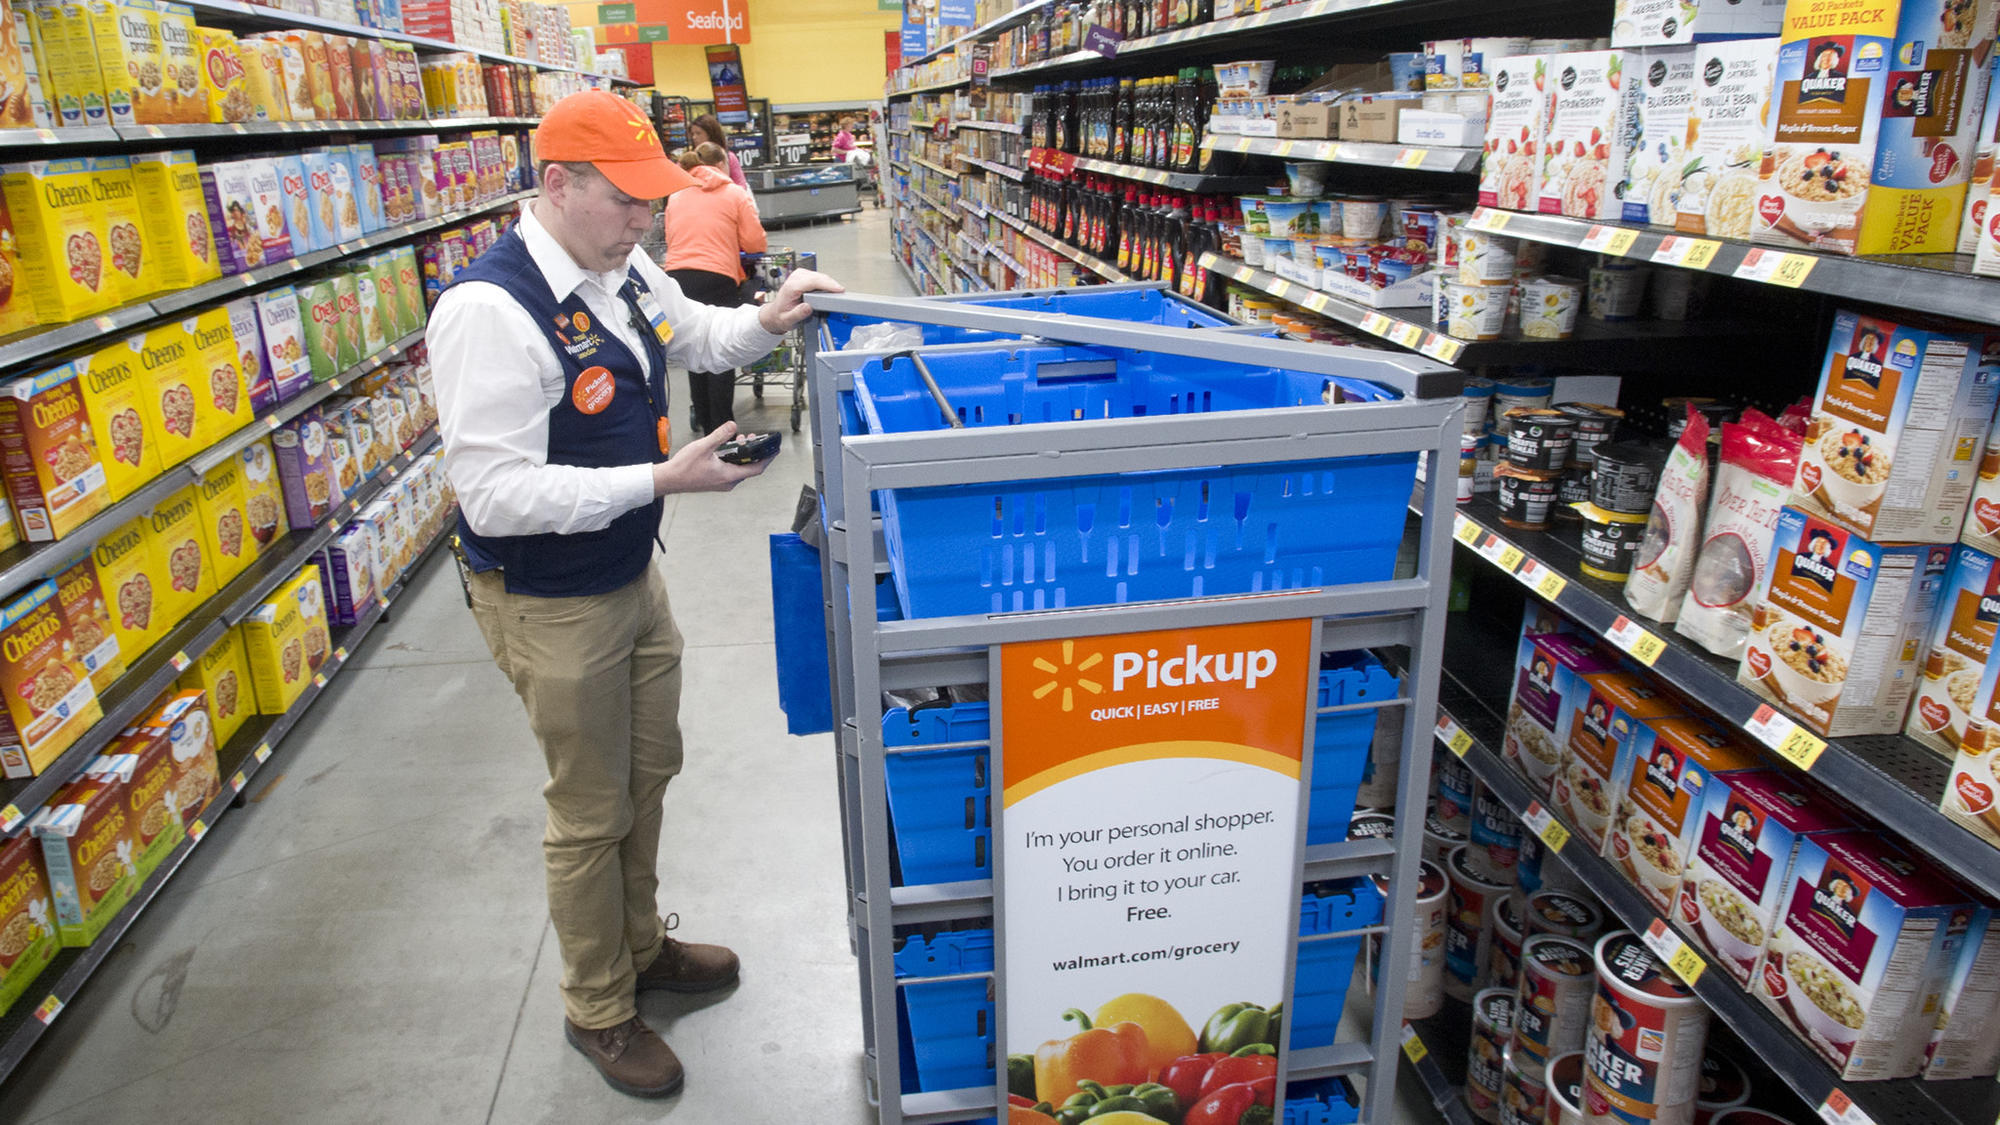 walmart rolling out millions of dollars in store upgrades